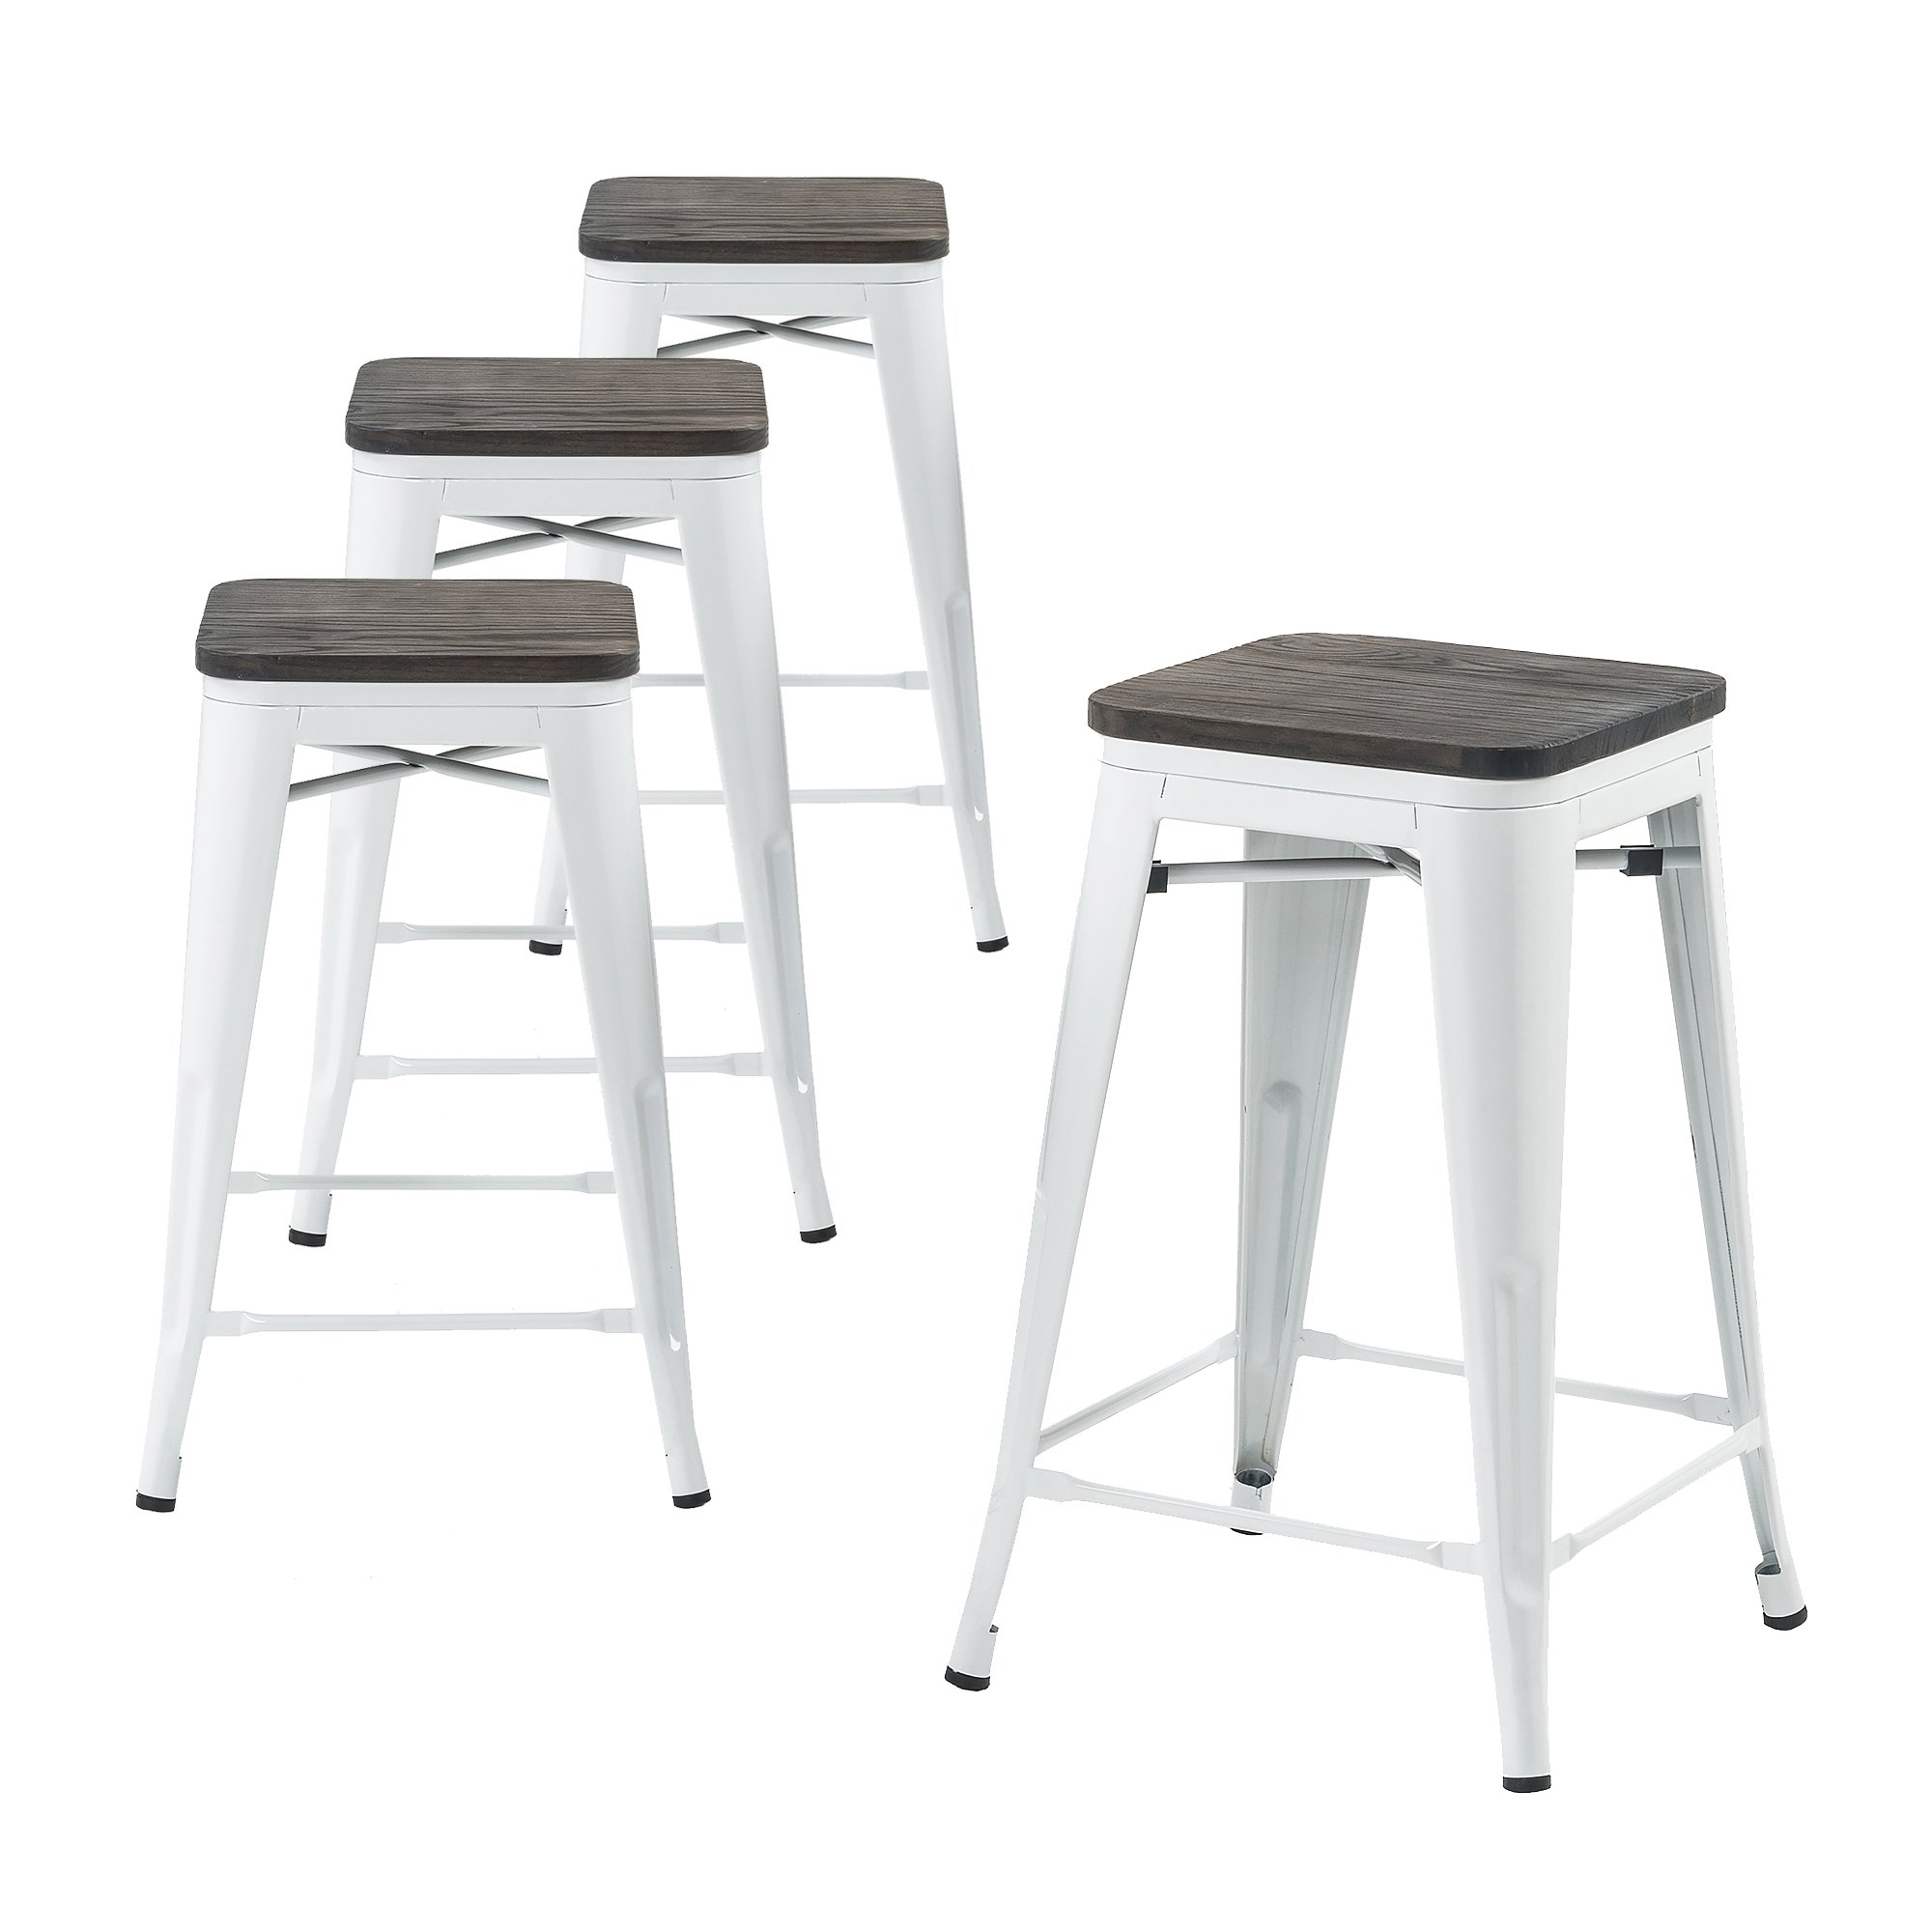 Buschman Metal Bar Stools 24'' Counter Height, Indoor/Outdoor and Stackable, Set of 4 (White with Wooden Seat) by Buschman Store